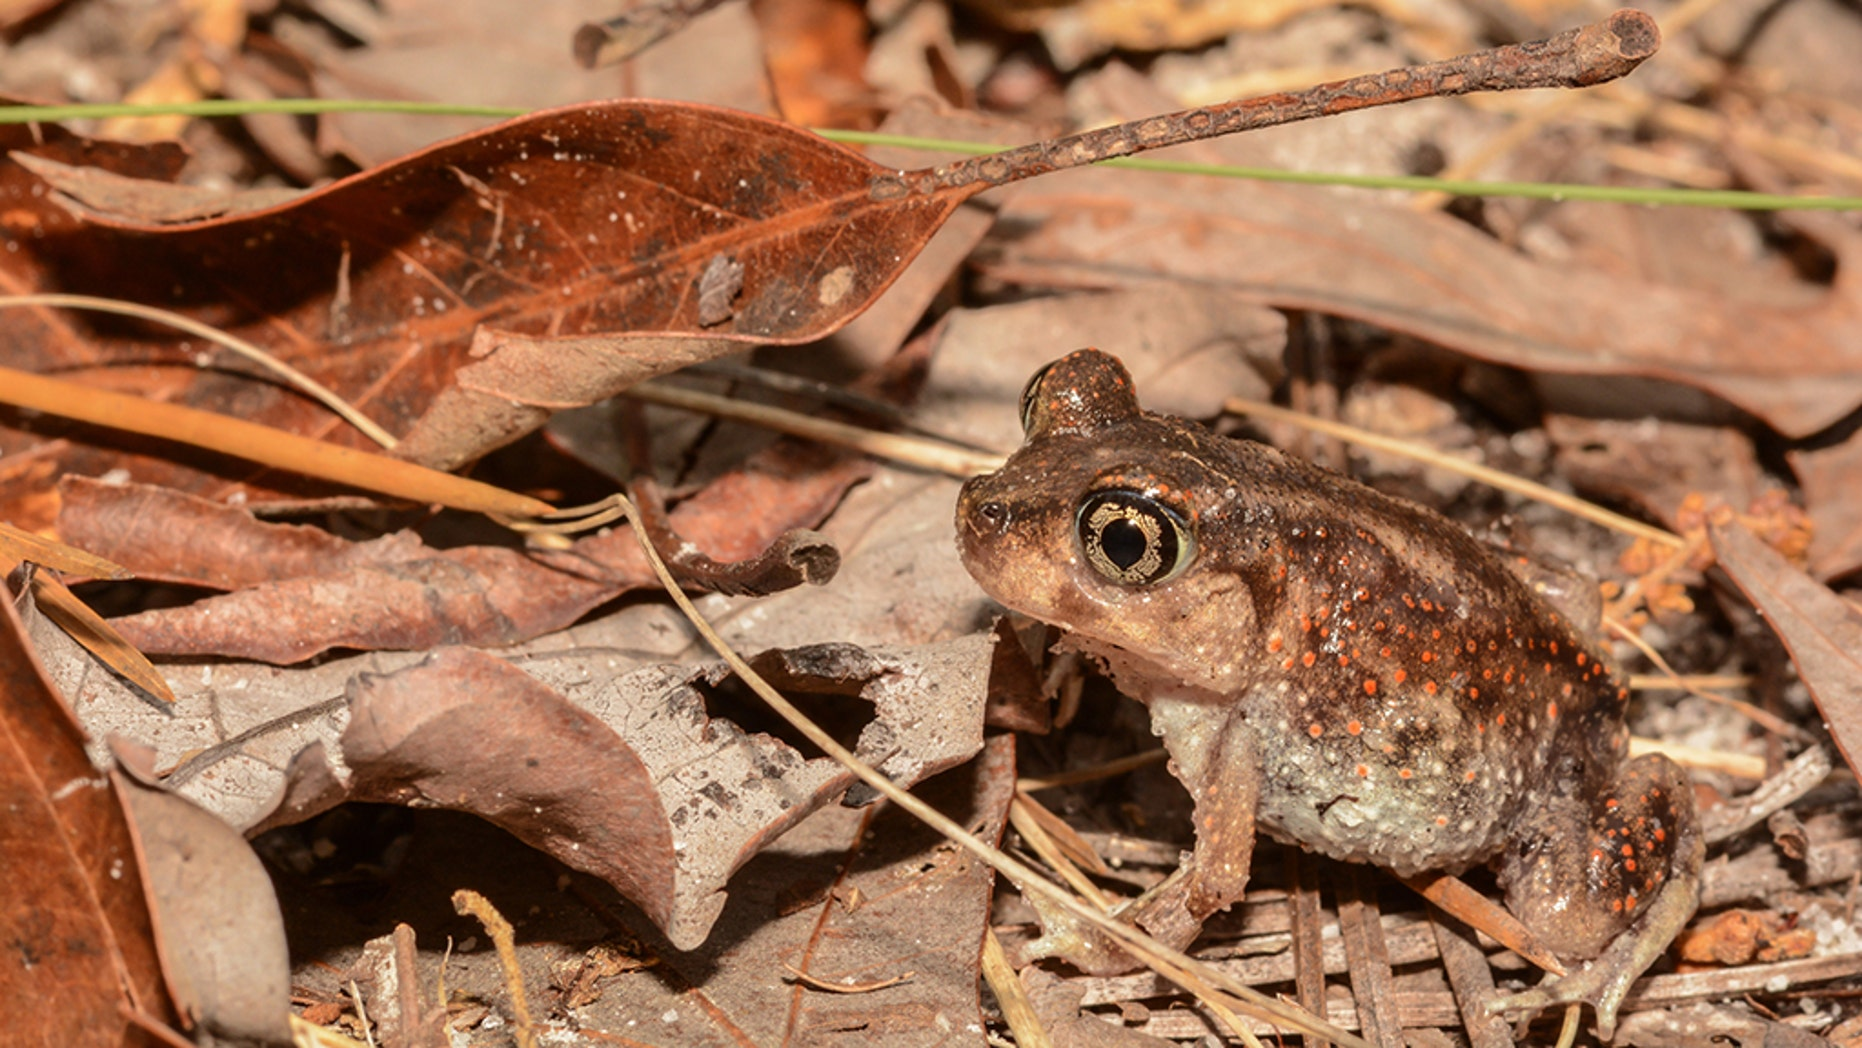 Coastal North Carolina residents may have noticed an increase in the local toad and frog population. An eastern spadefoot toad is one of the species that's been on the rise, a state biologist said.